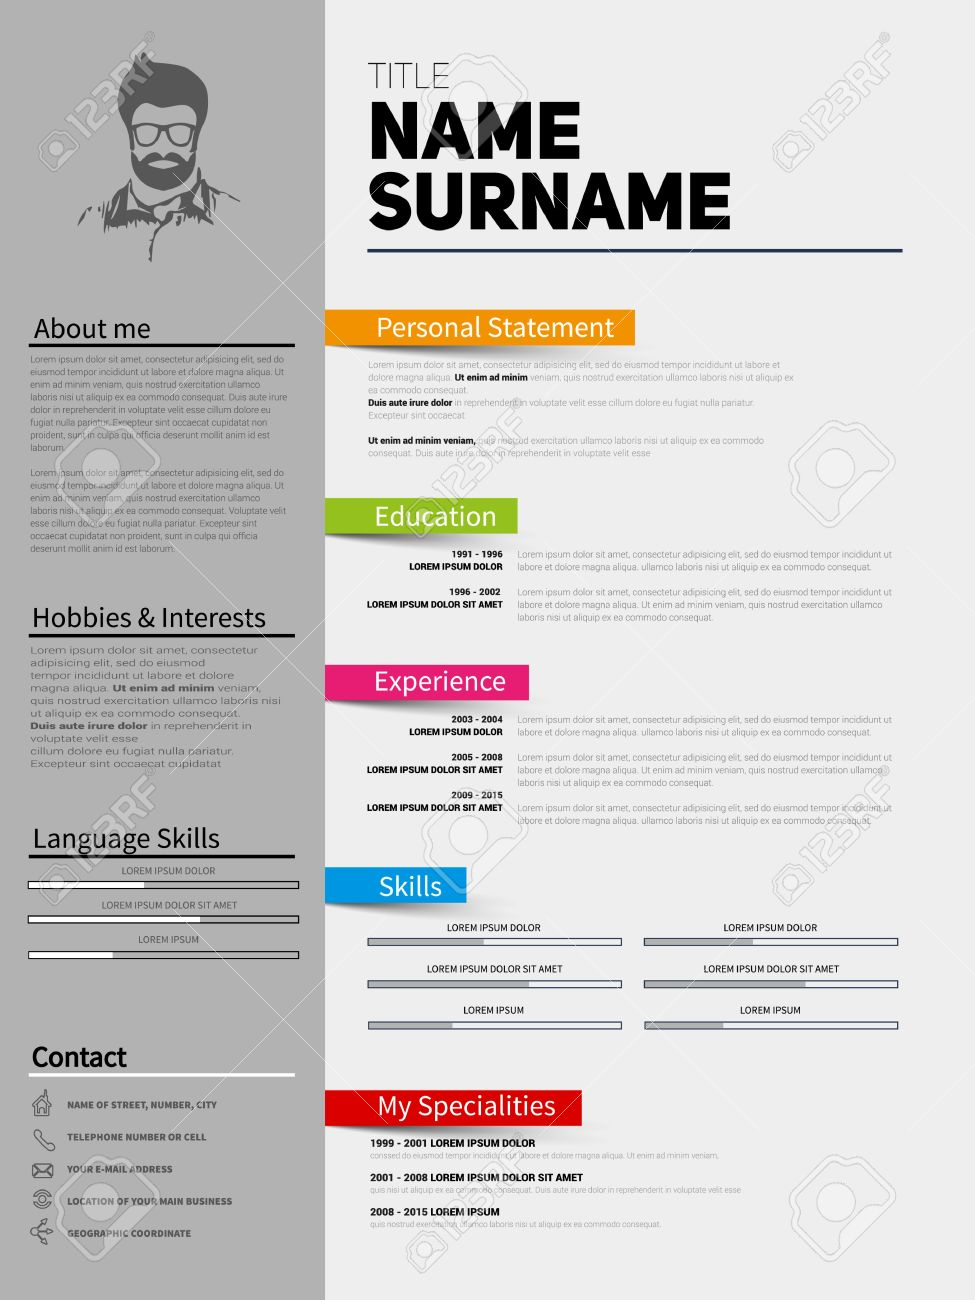 Simple Design Resume Nmdnconference Example Resume And Cover